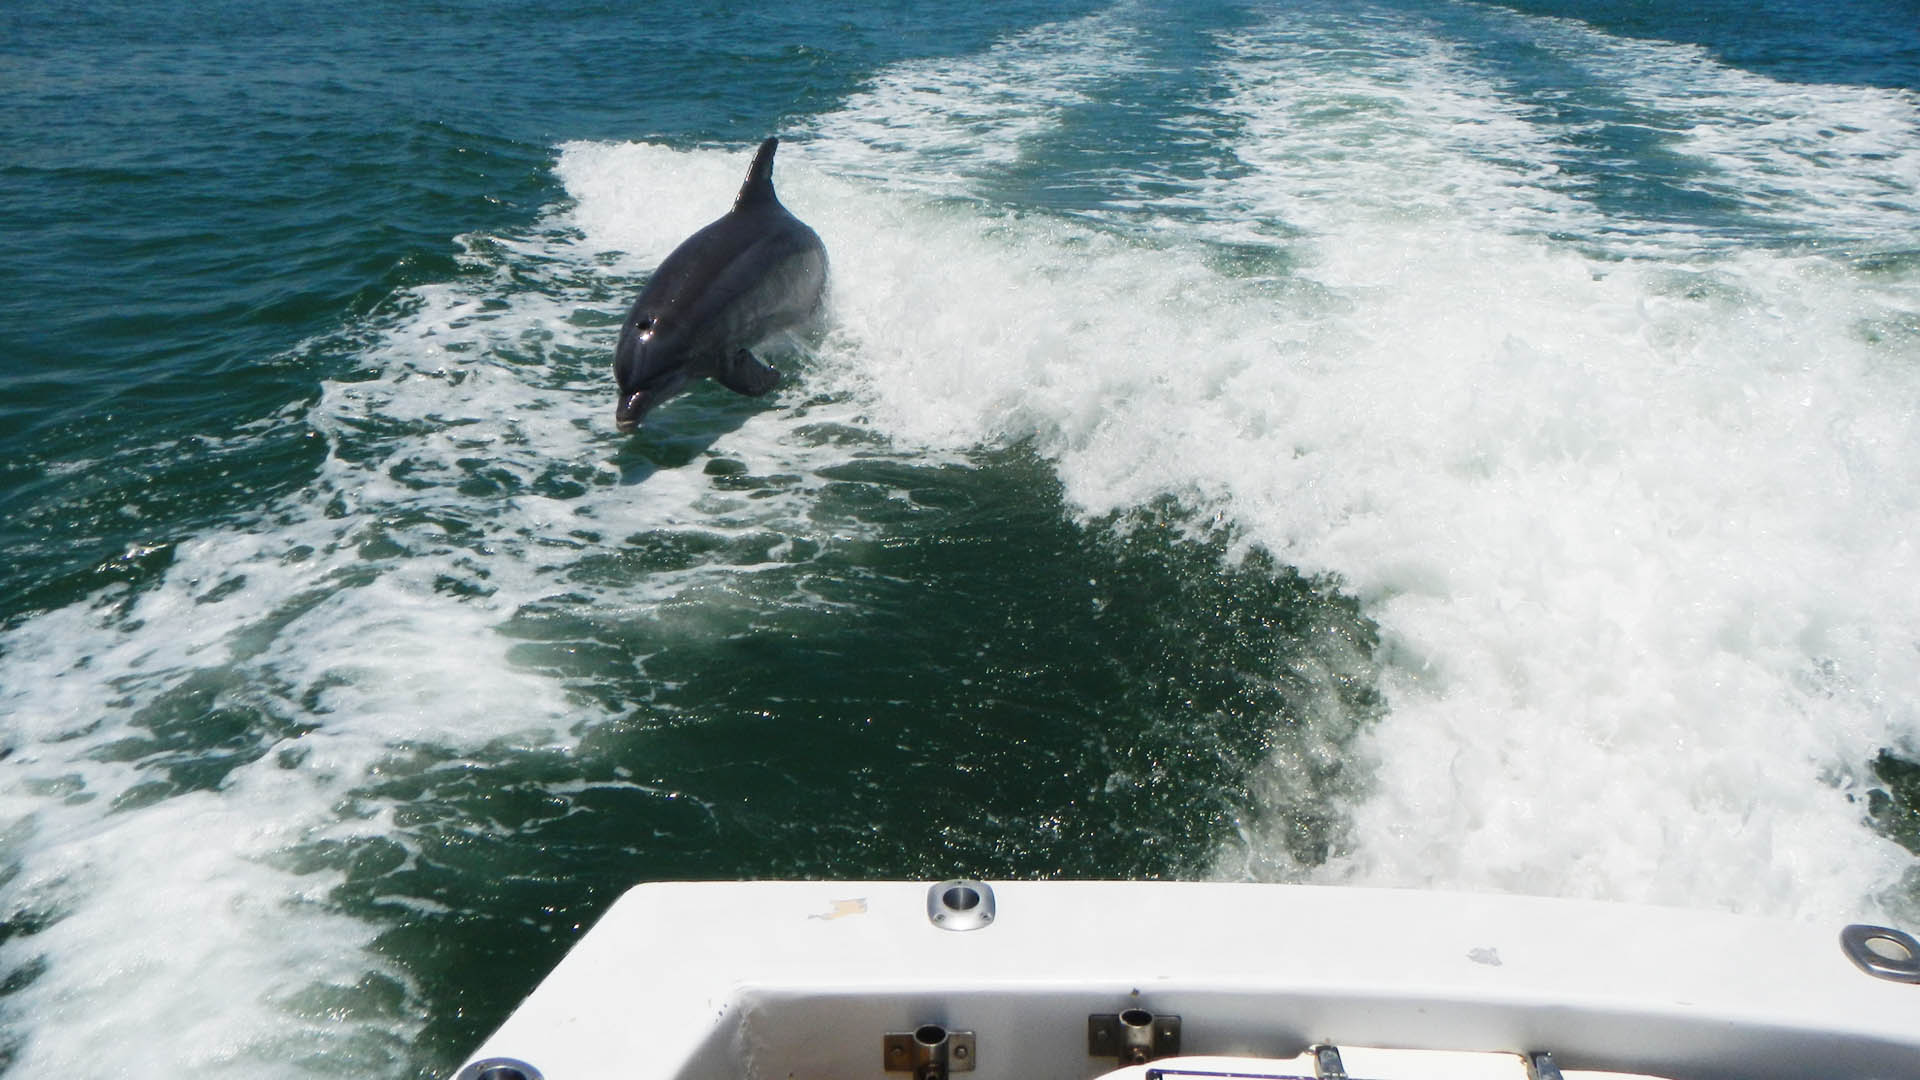 Dolphins chasing The Jawbreaker fishing charter.